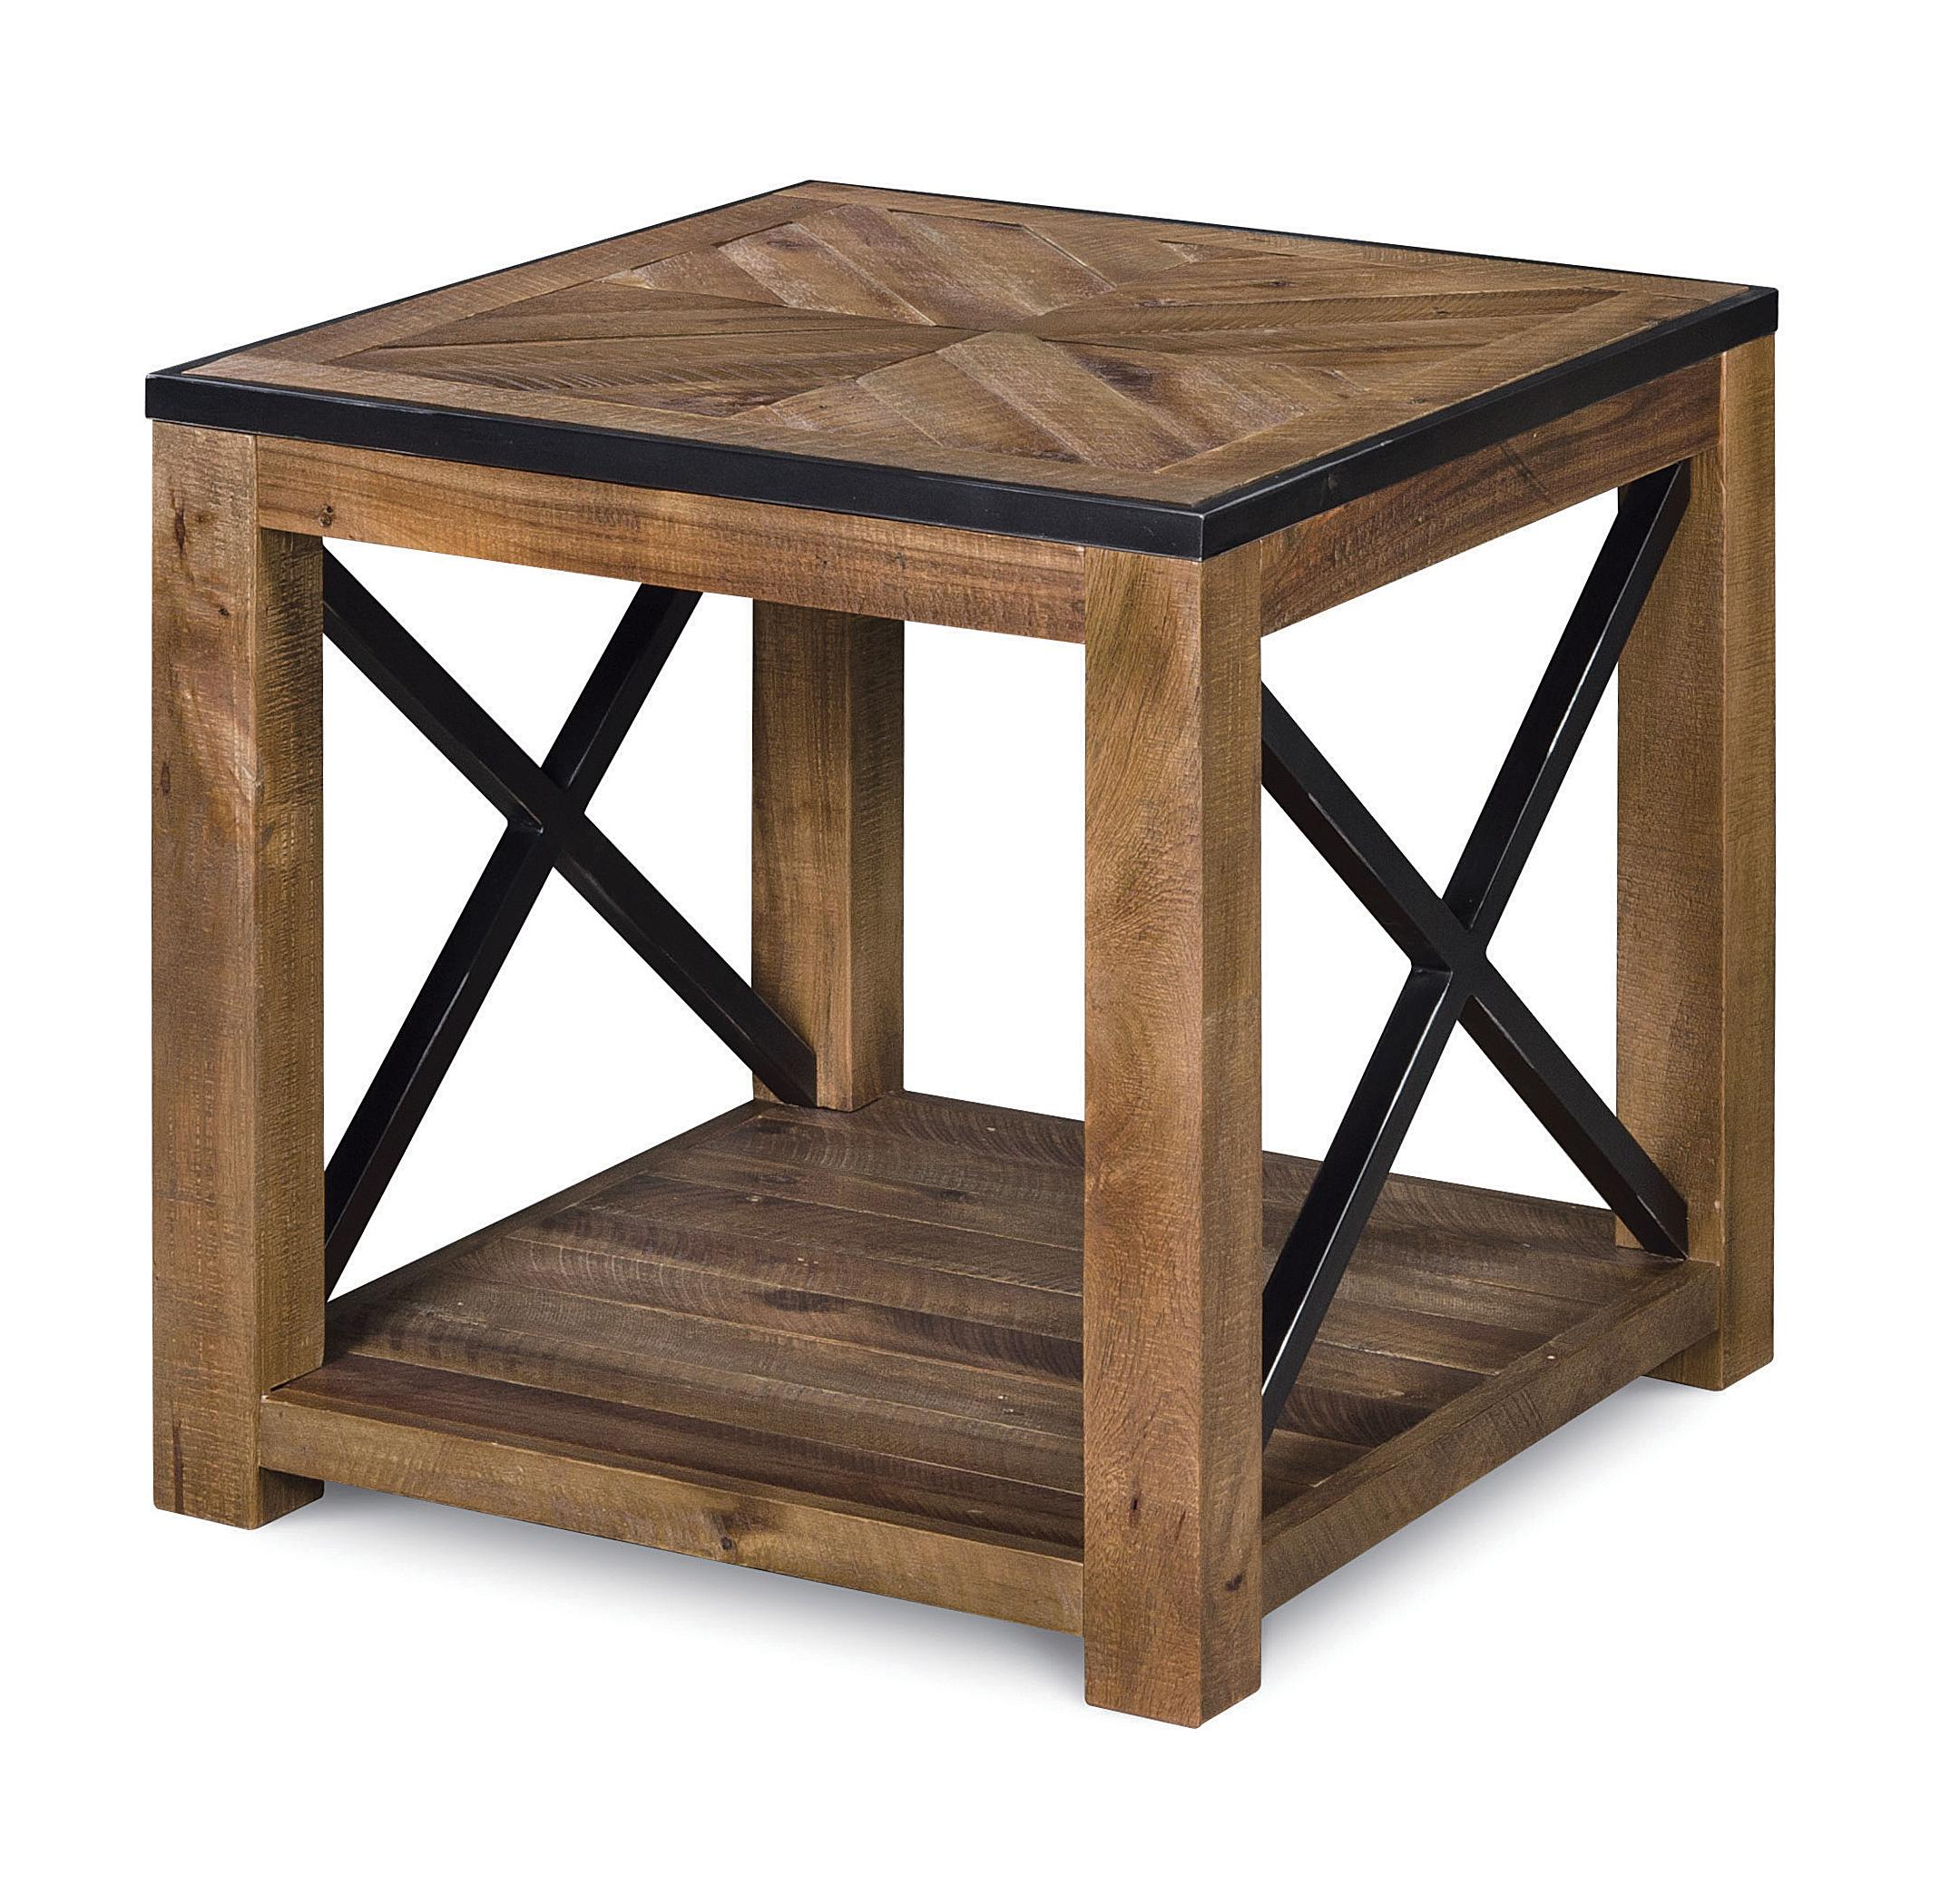 Rectangular End Table with One Shelf